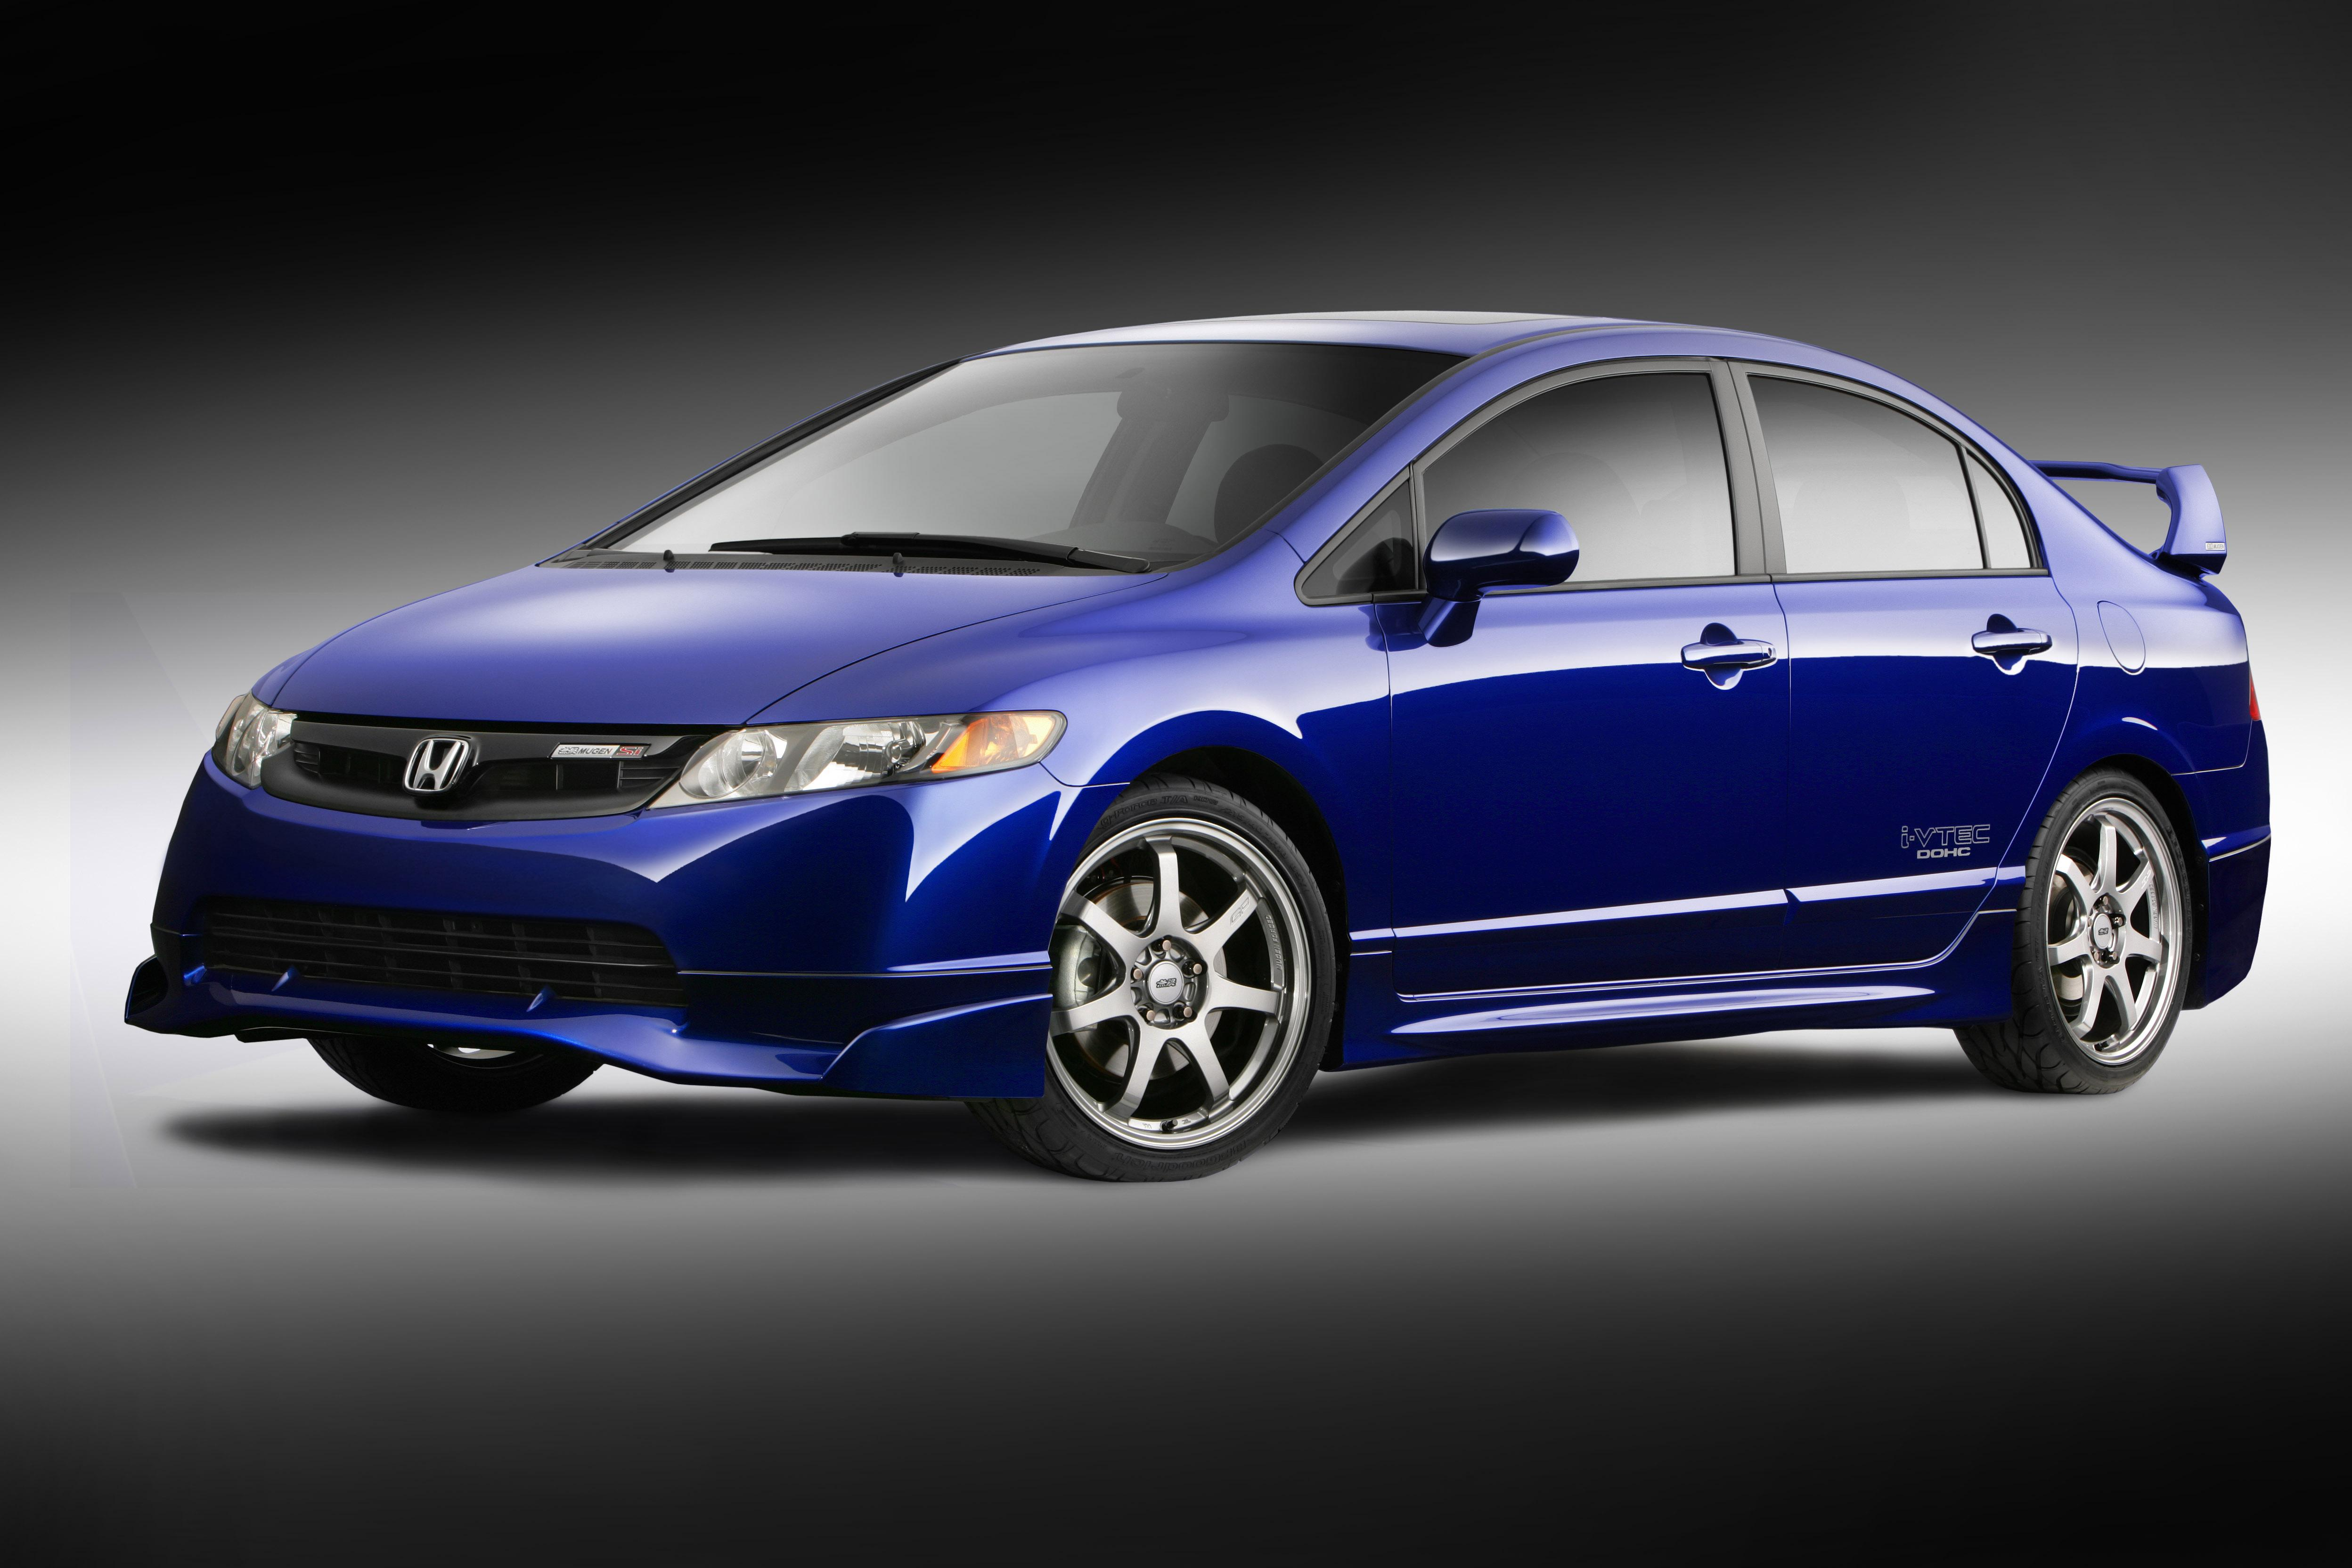 2008 Honda Civic MUGEN Si Sedan | Top Speed. »